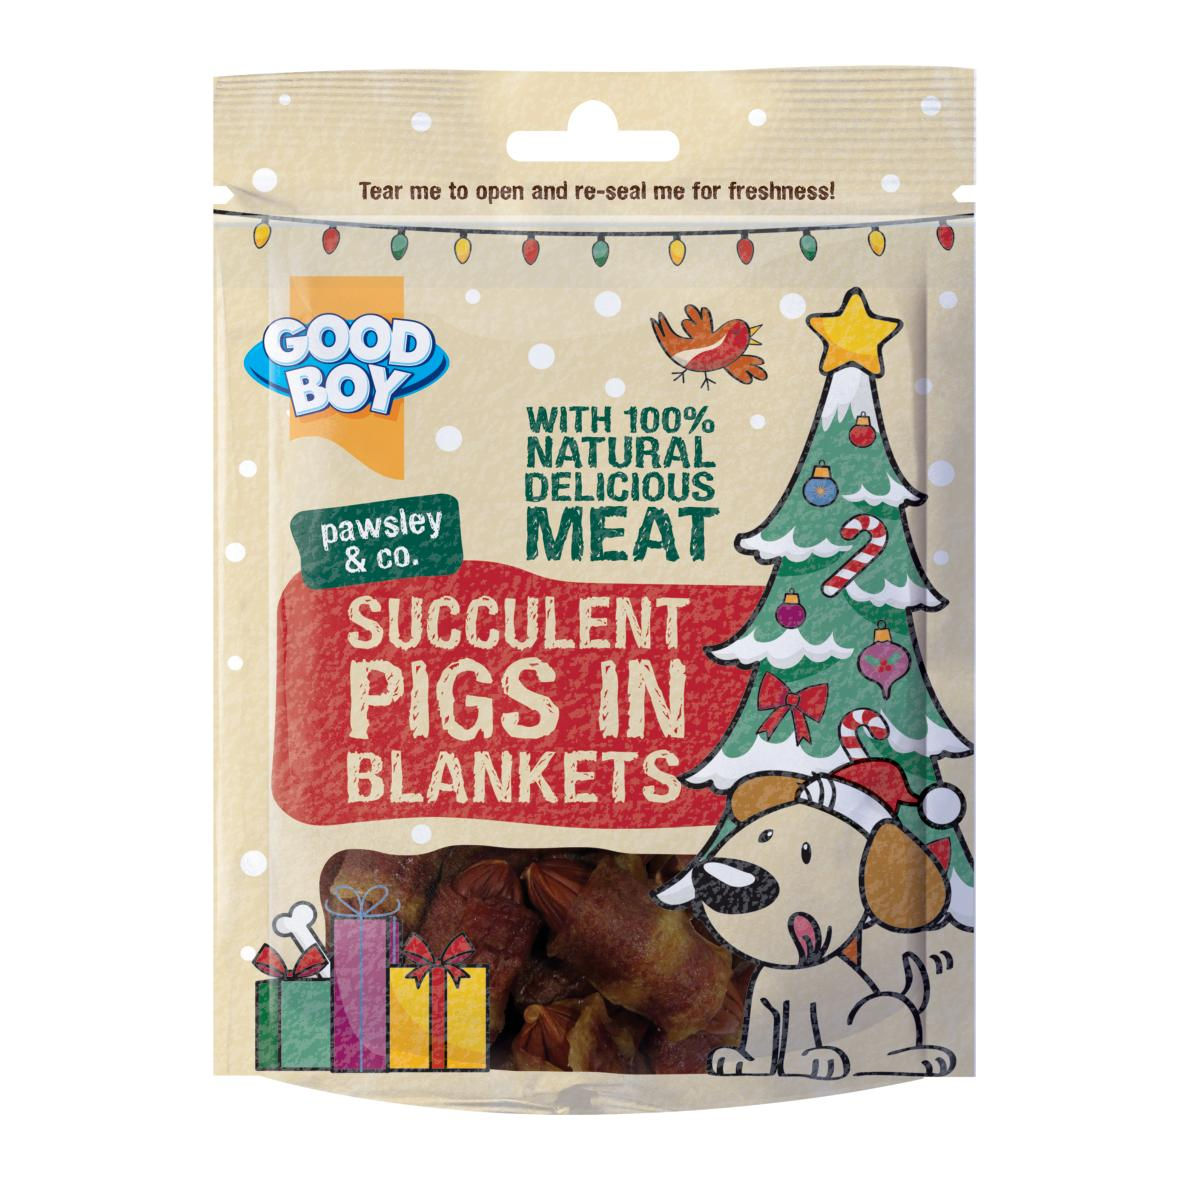 CLEARANCE Good Boy Pawsley Succulent Pigs in Blankets 70g [CHRISTMAS EDITION]